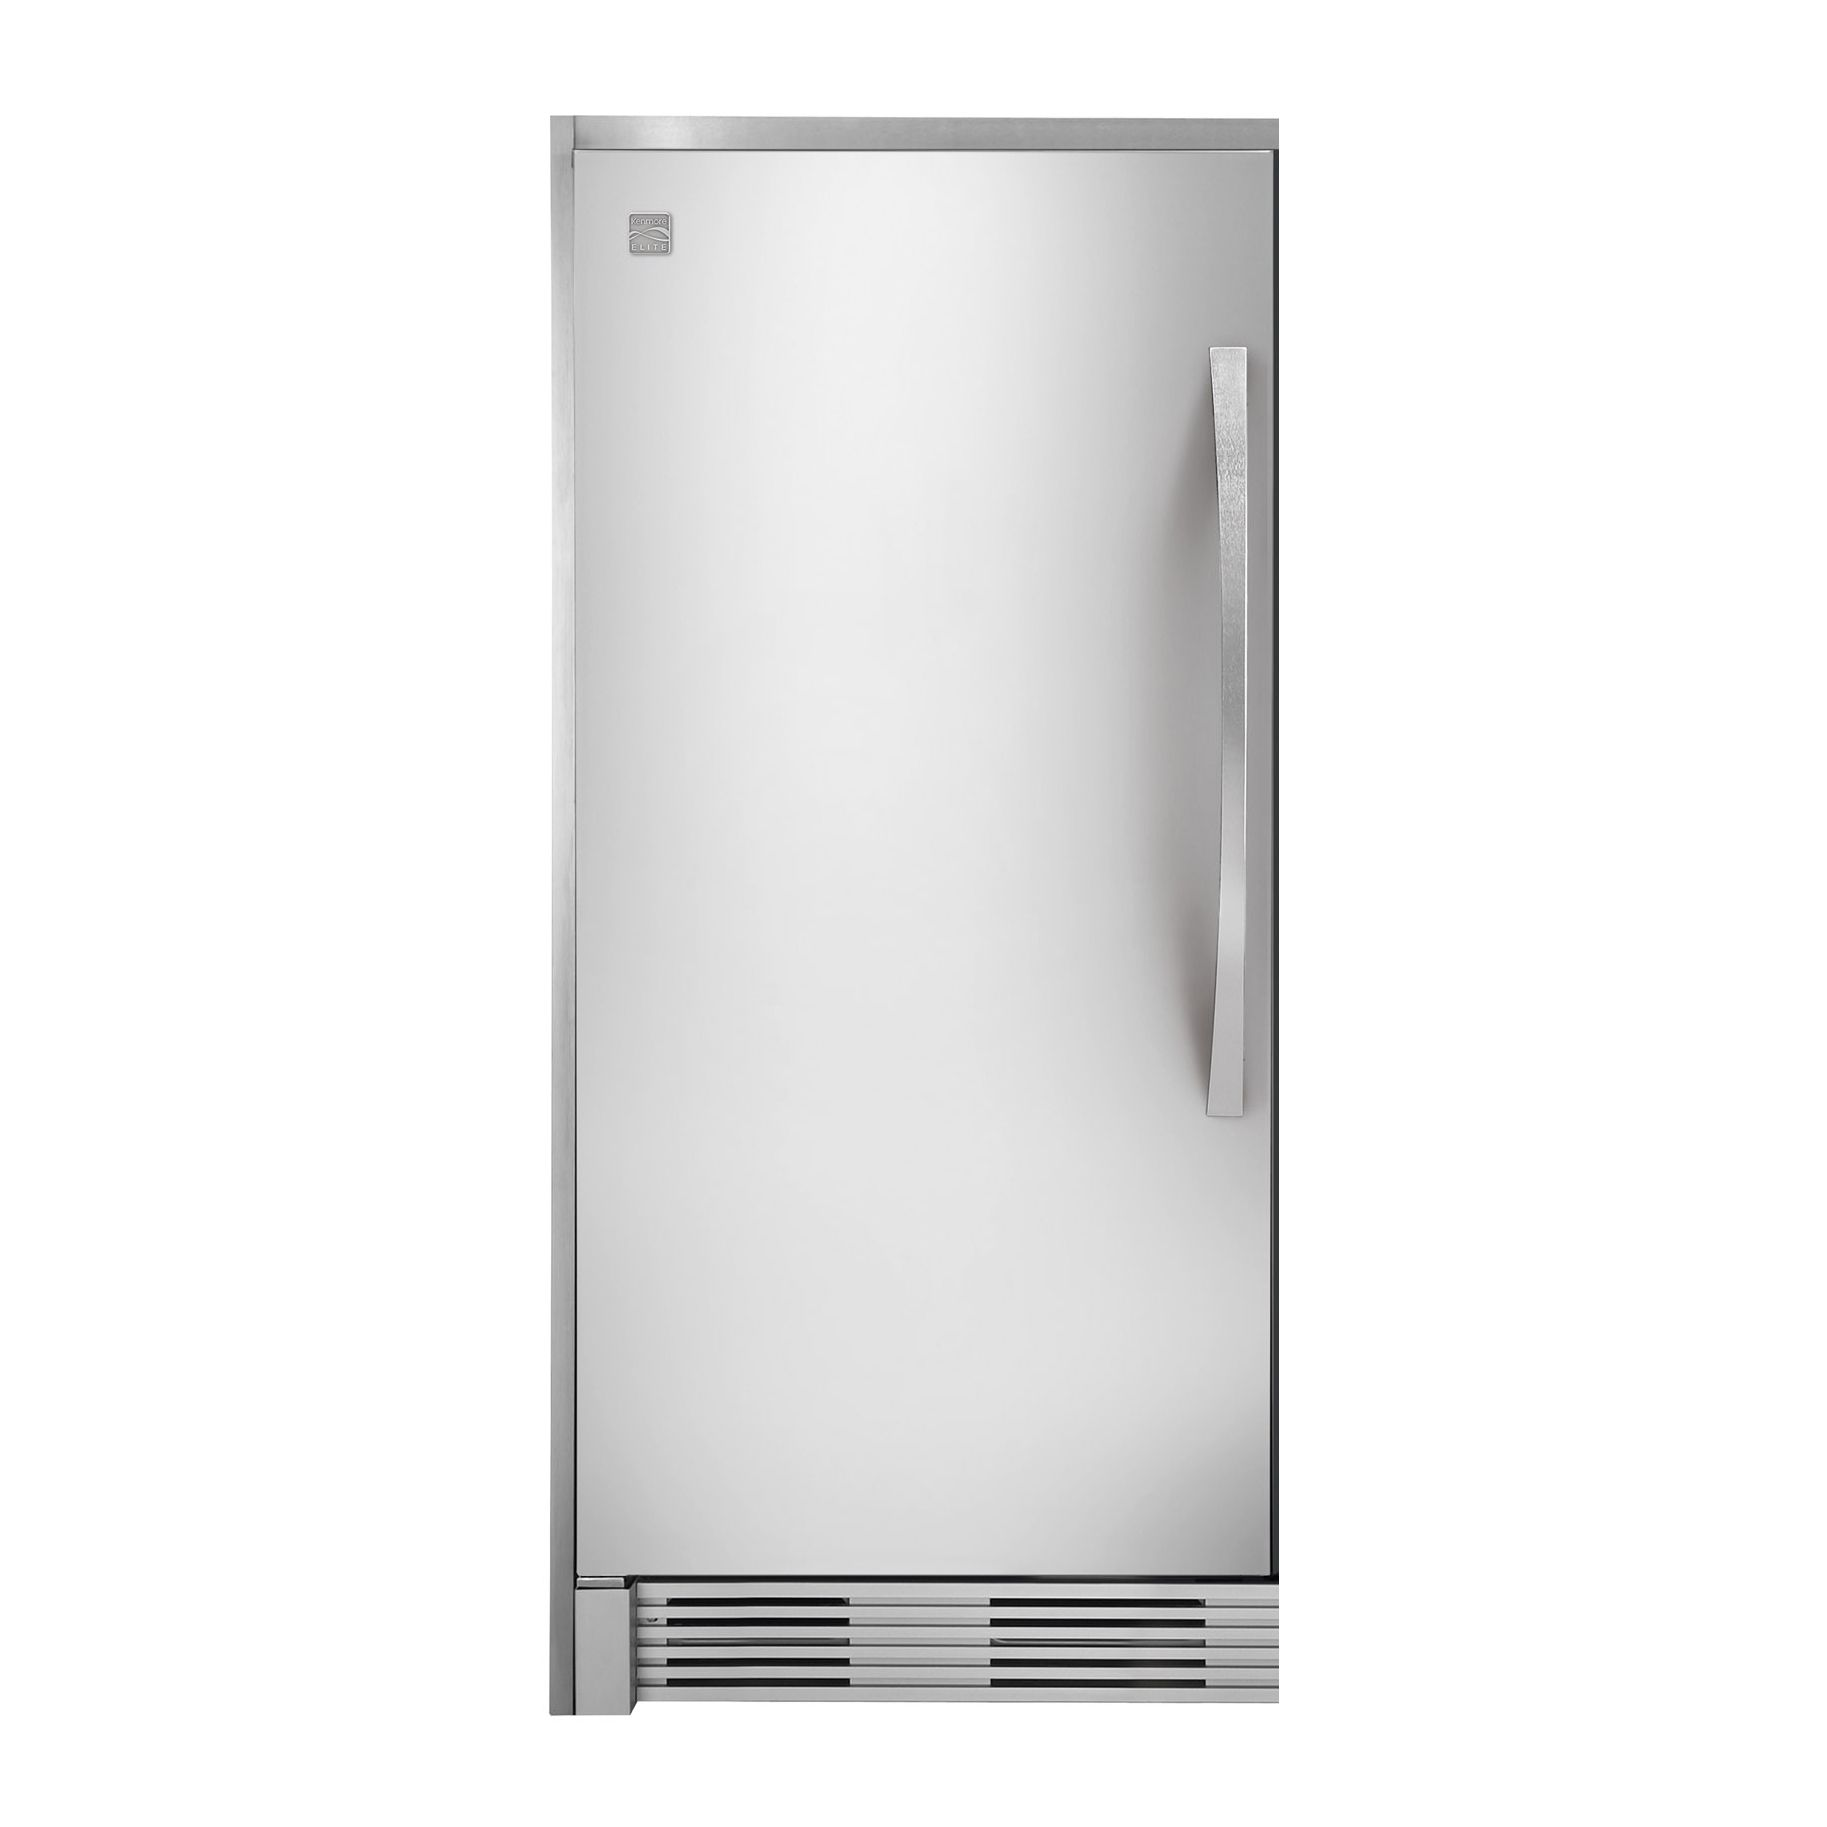 18-6-cu-ft-Built-In-All-Freezer-Stainless-Steel